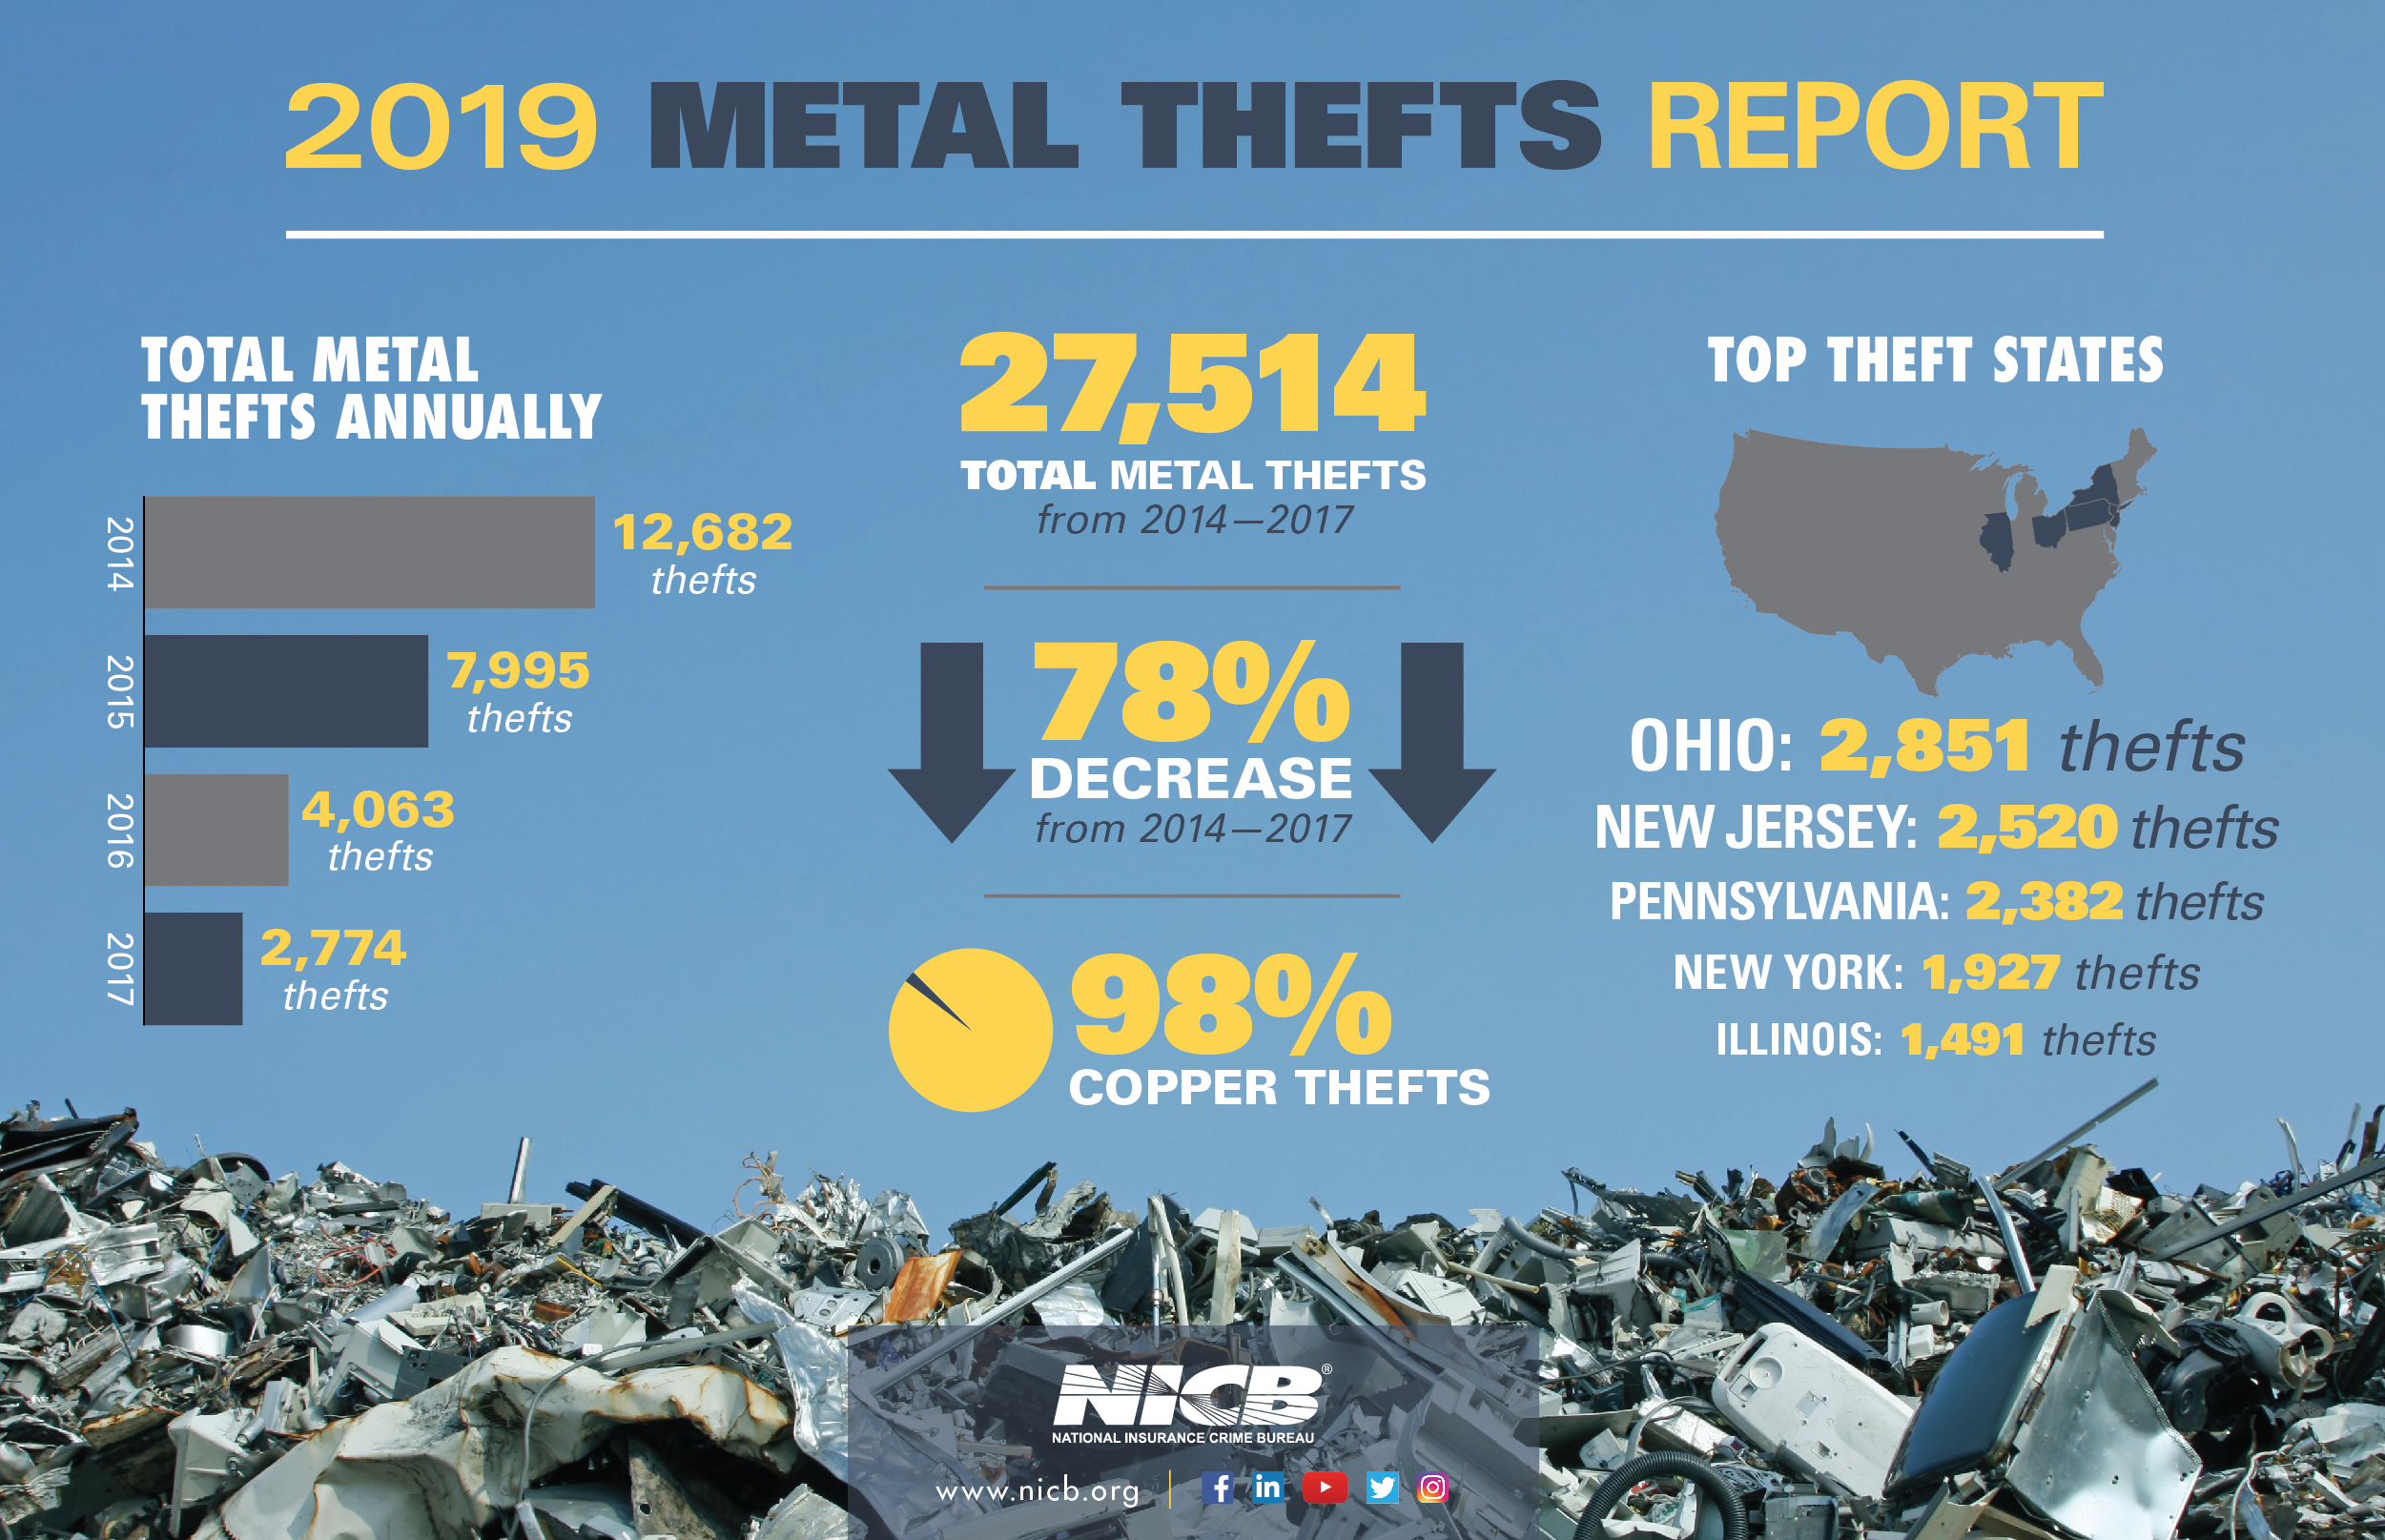 2019 Metal Theft Report Infographic